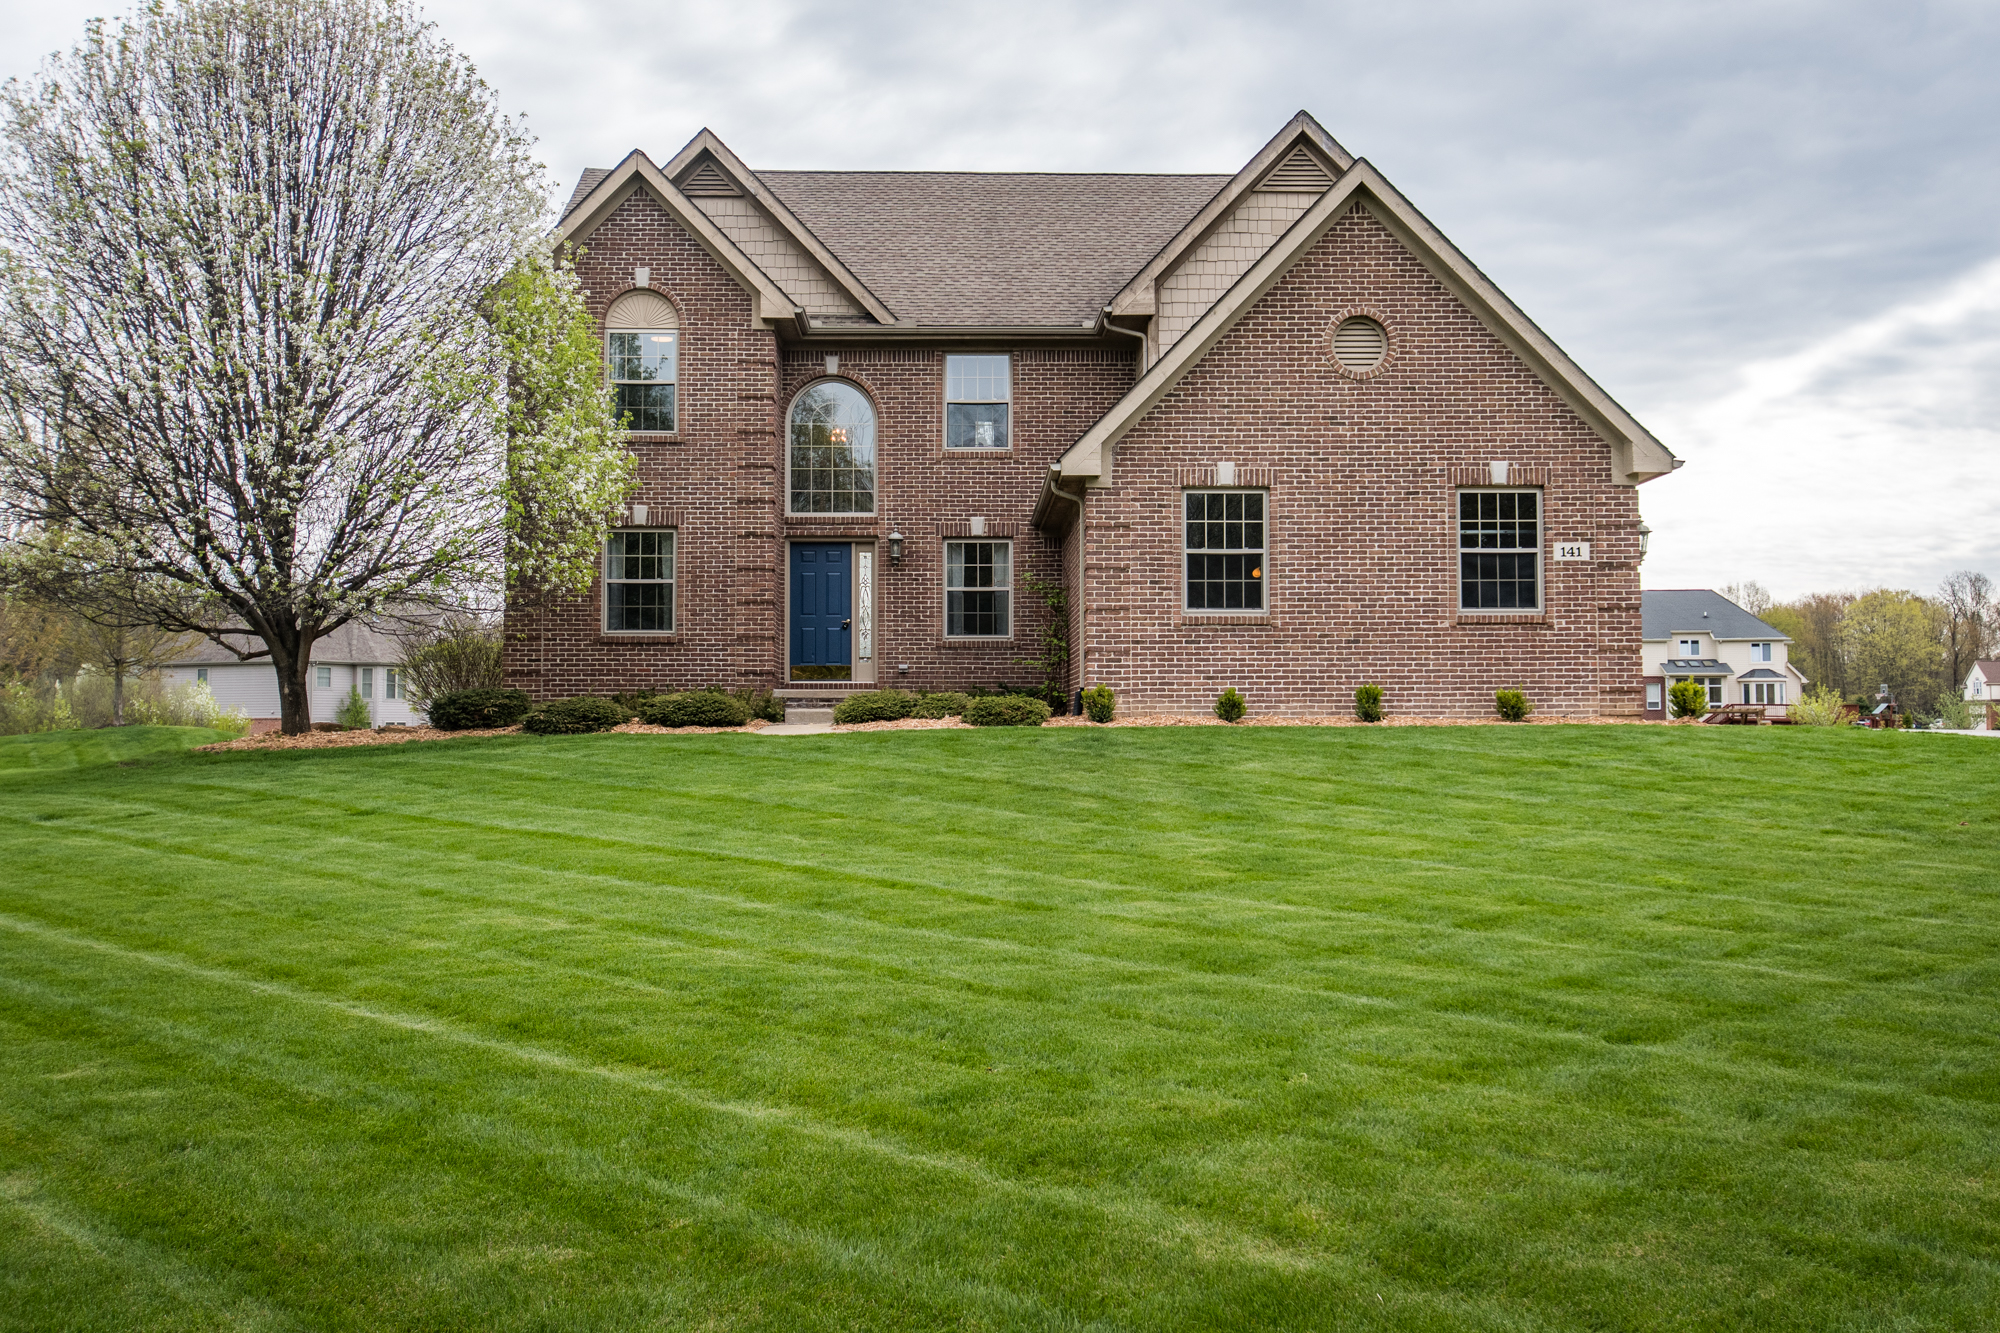 Auburn Trail, Brighton - $392,500   DOM 15 / Sold for 98% of asking price / 12 Showings